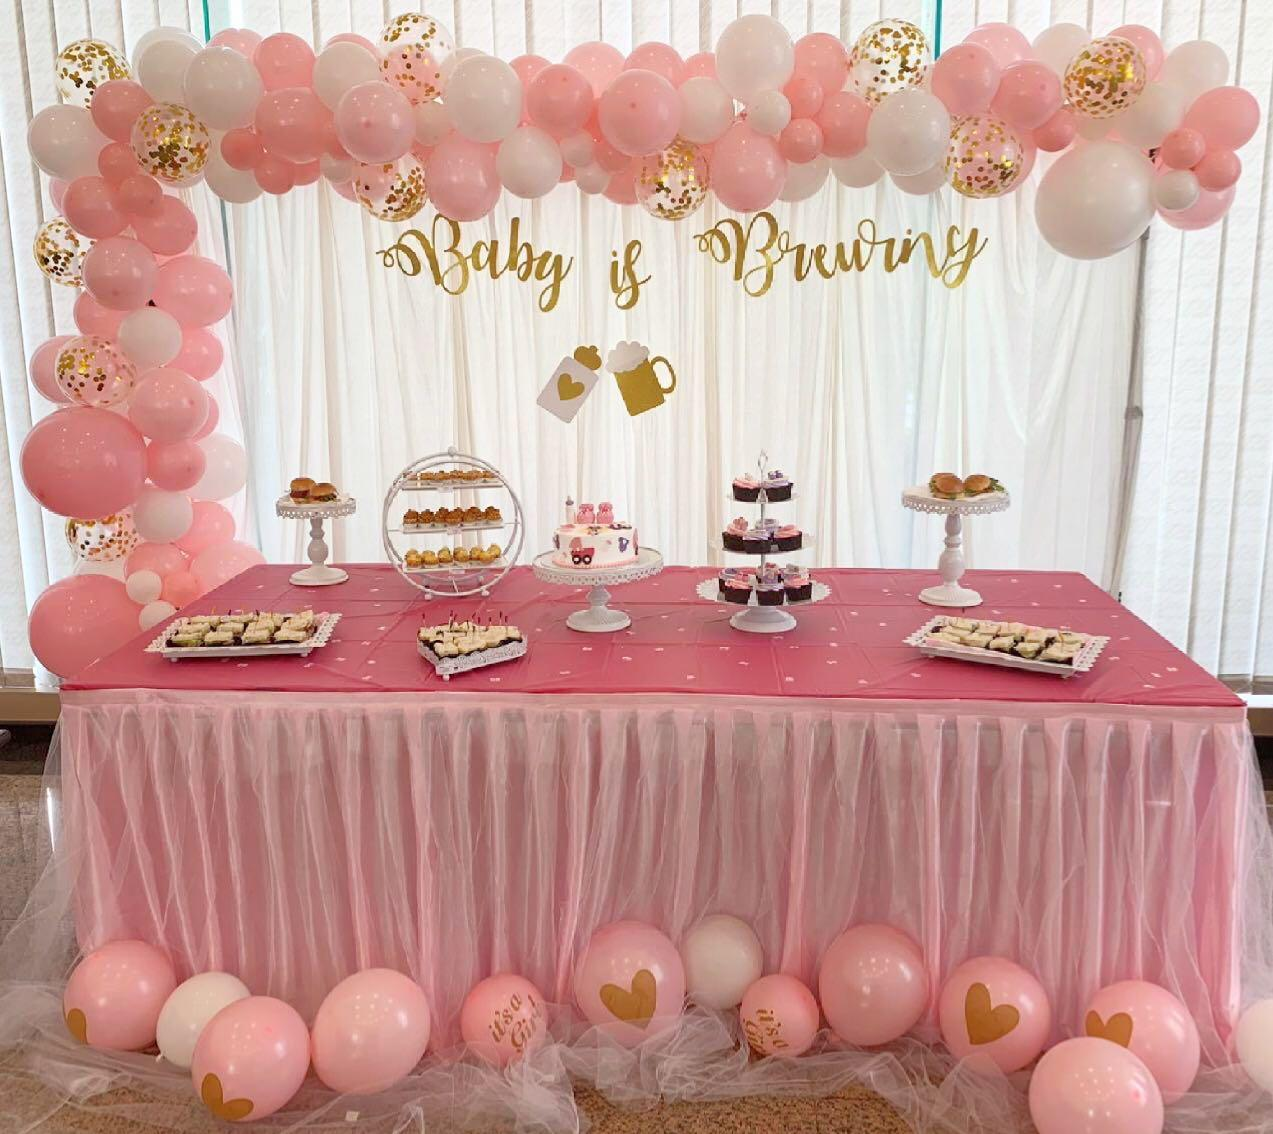 Rent backdrop veil curtains tutu tulle table skirting dessert stands trays table cloth